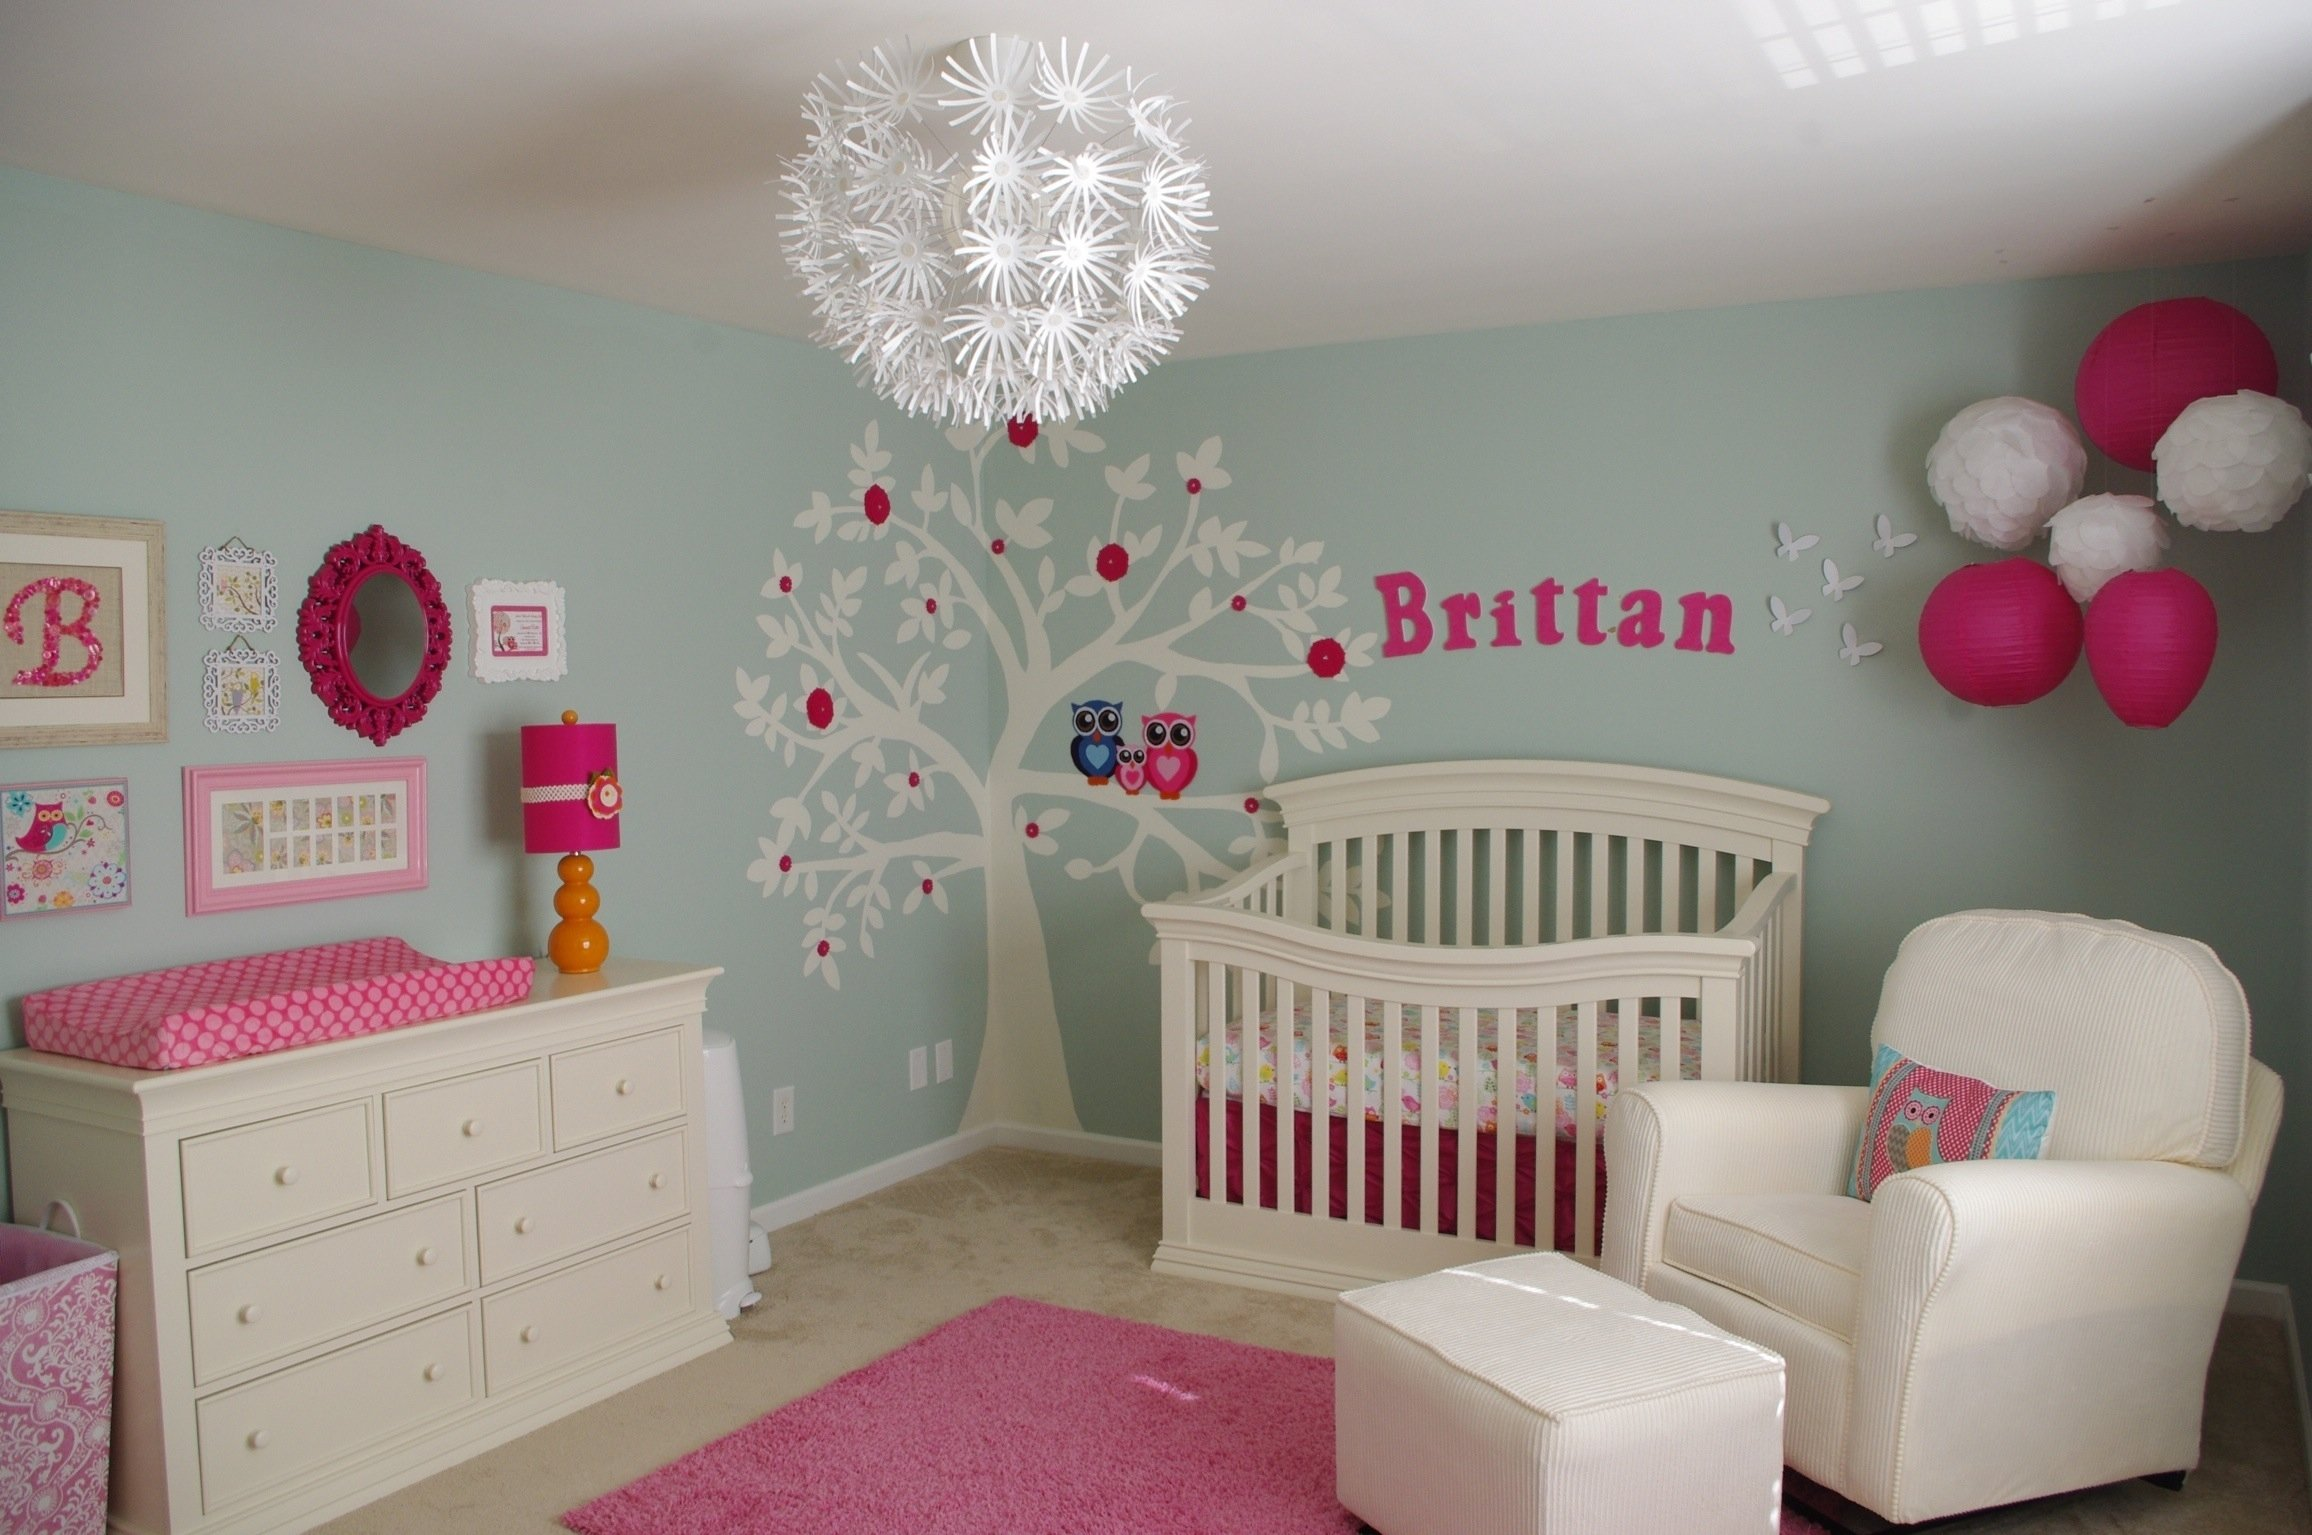 10 Spectacular Cute Baby Girl Picture Ideas home decor baby nursery decorate girl room ideas cute pinterest 2 2021